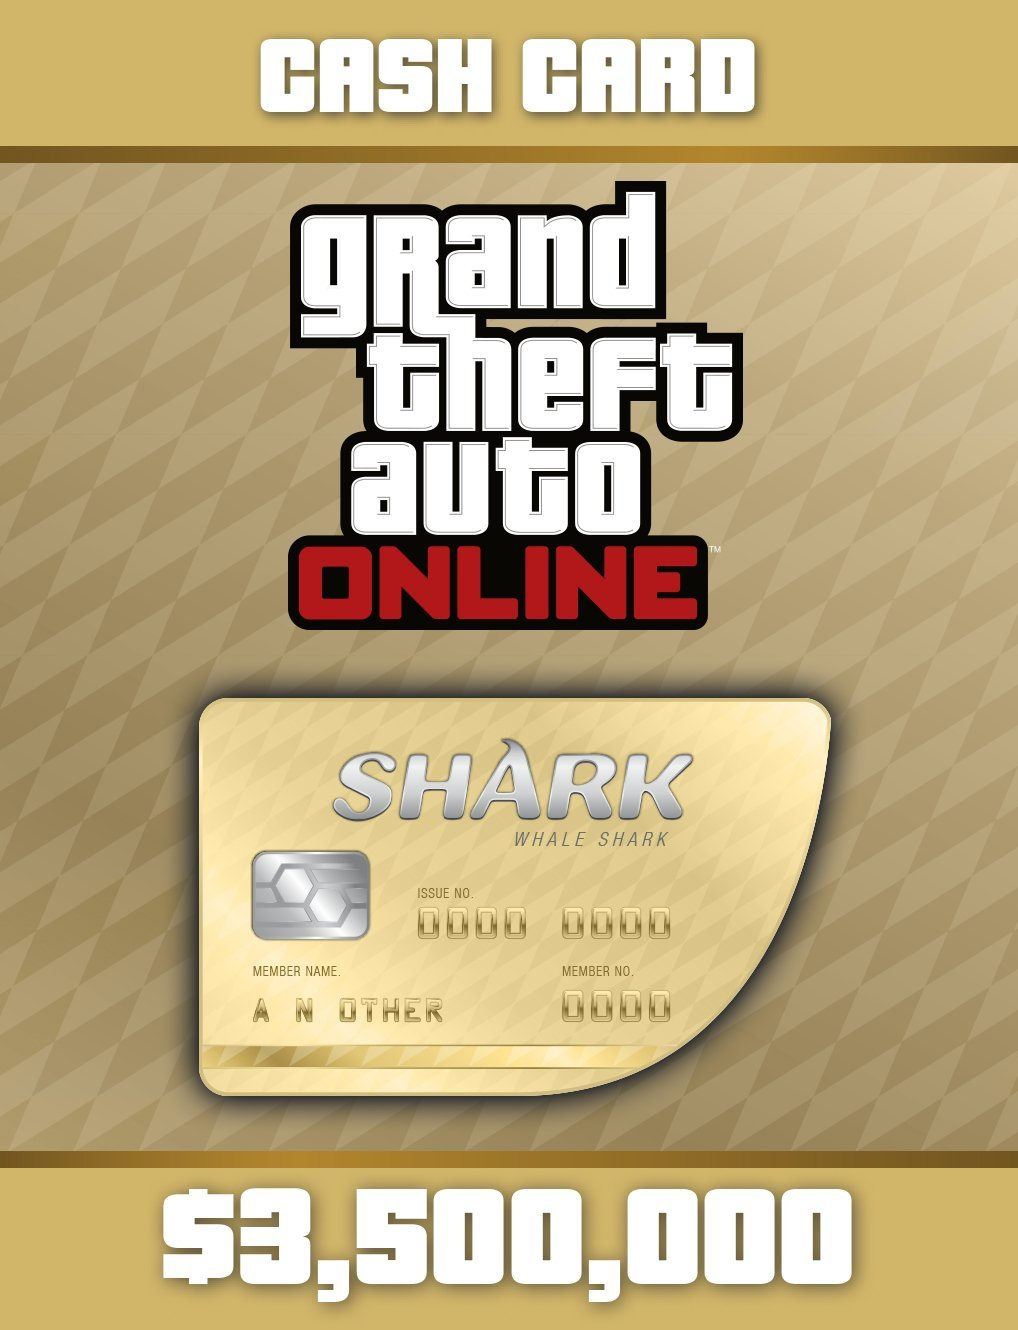 Grand Theft Auto Online | GTA V Whale Shark Cash Card | 3,500,000 GTA-Dollars [PC Code] (Gta V 5 Pc)